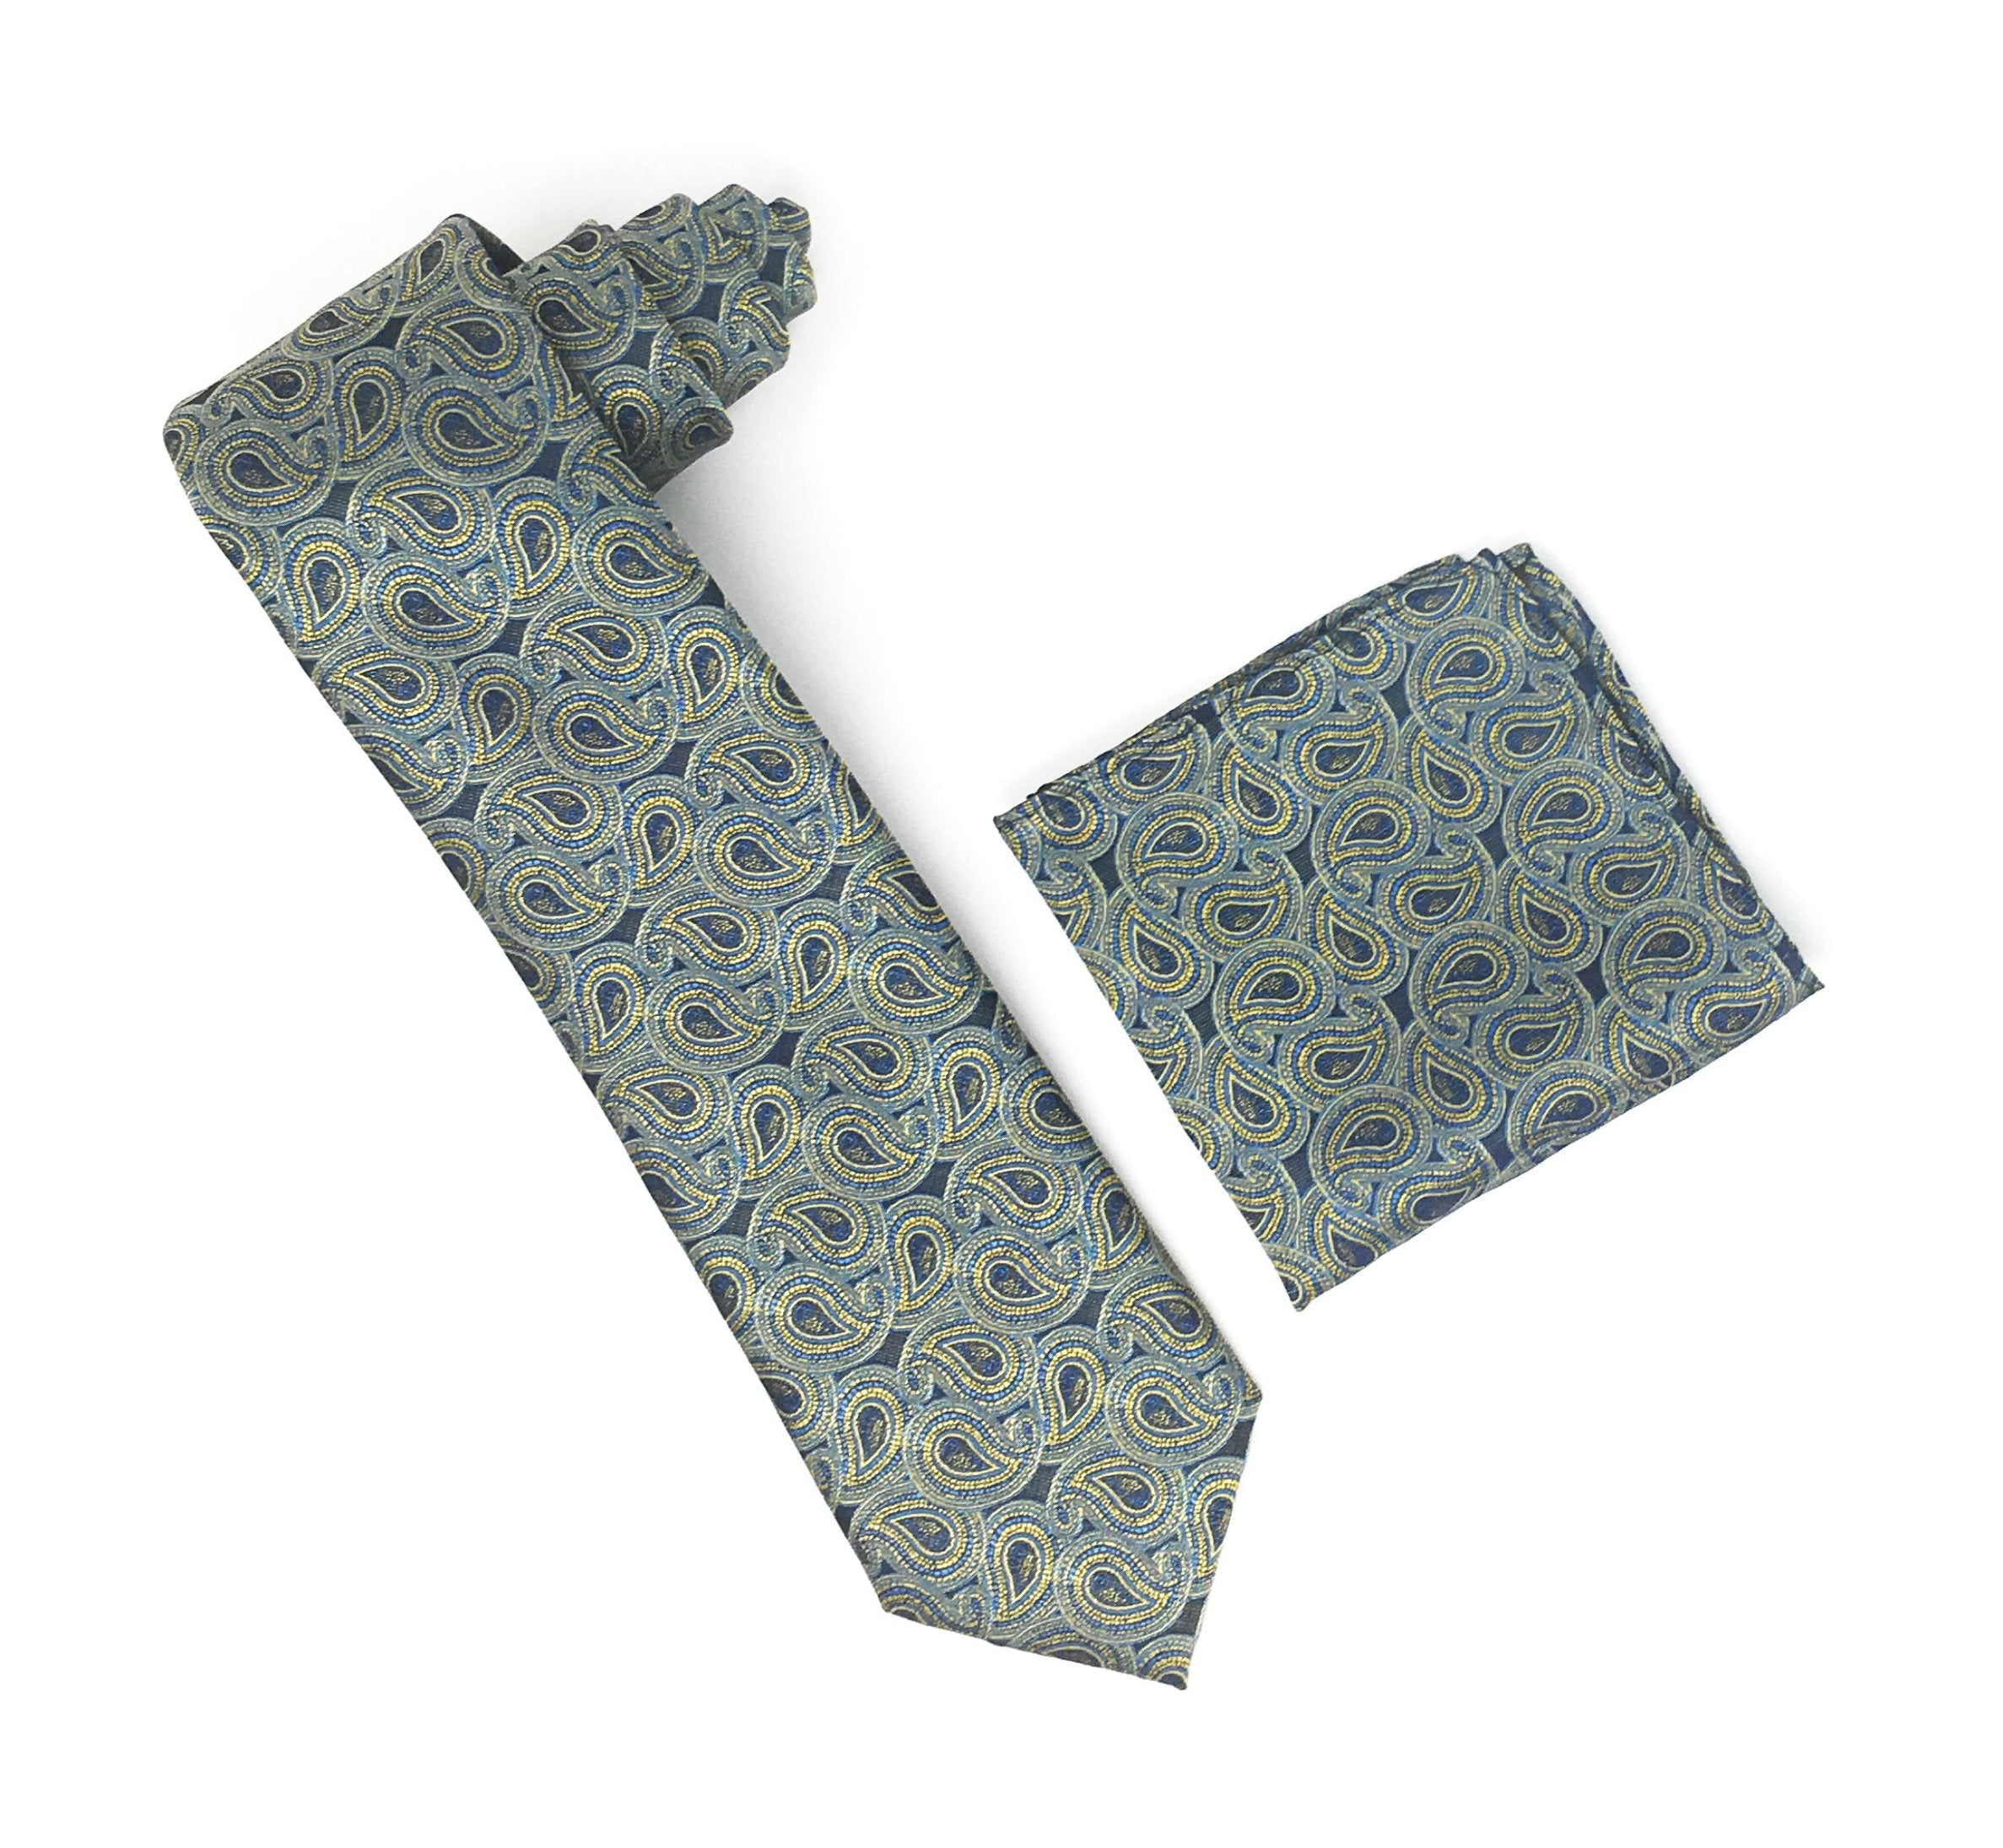 90c46cf18c04 WTH573_Forest_Green_Blue_Gold_Paisley_Silk_Tie_With_Matching_Square_6c640c02-7b74-4bca-8f7d-4fcef8c30622.JPG?v=1549080439